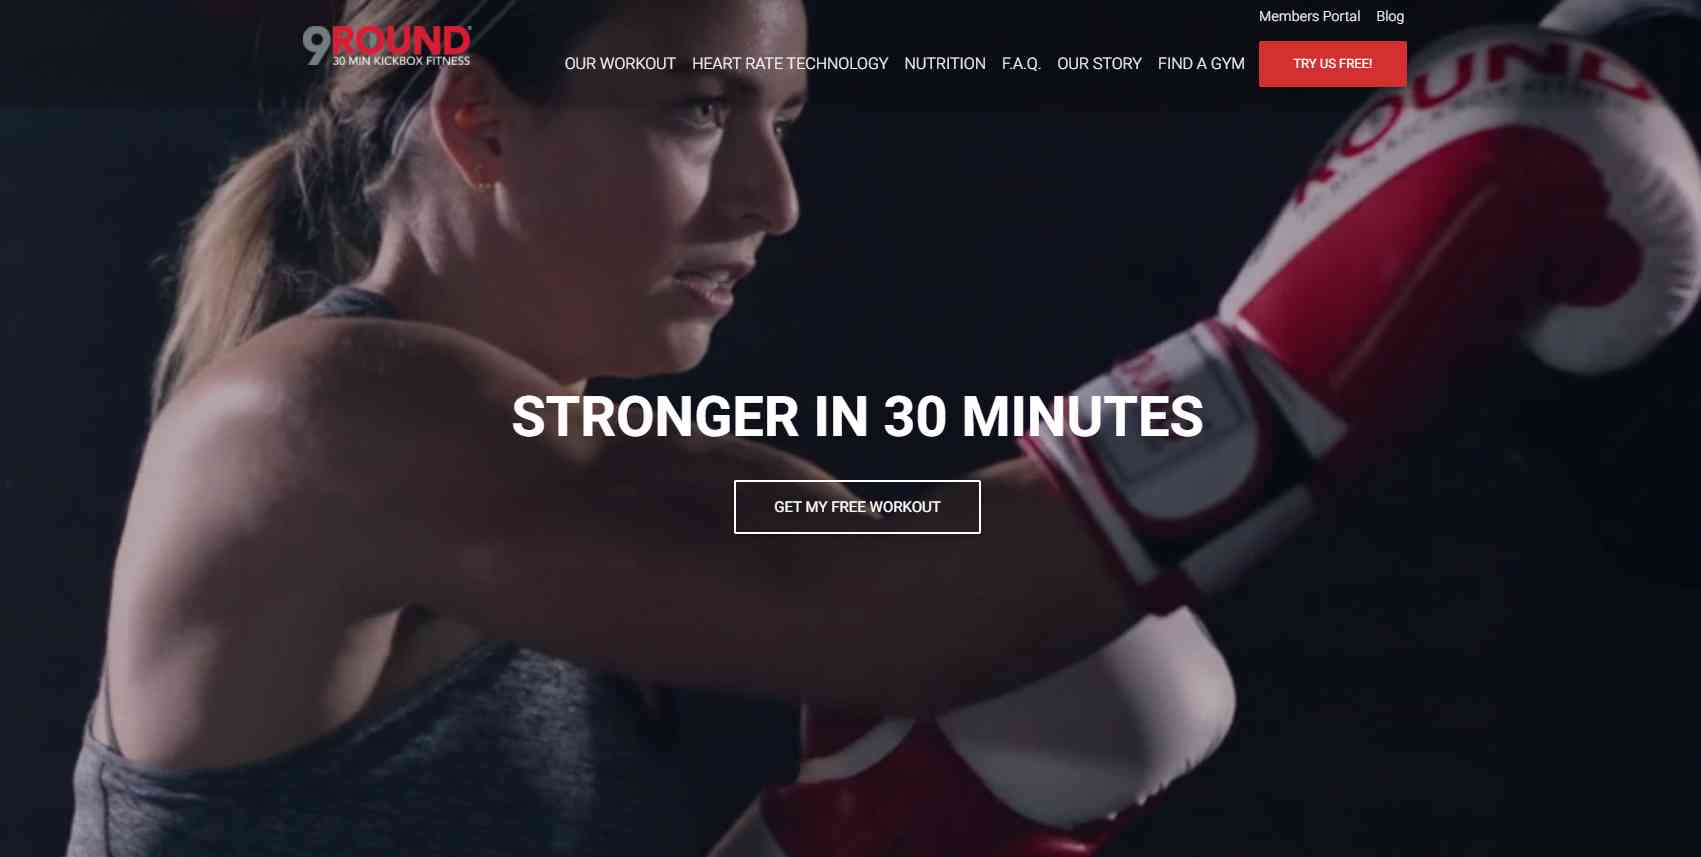 9 round Top Kickboxing Gyms and Classes in Singapore